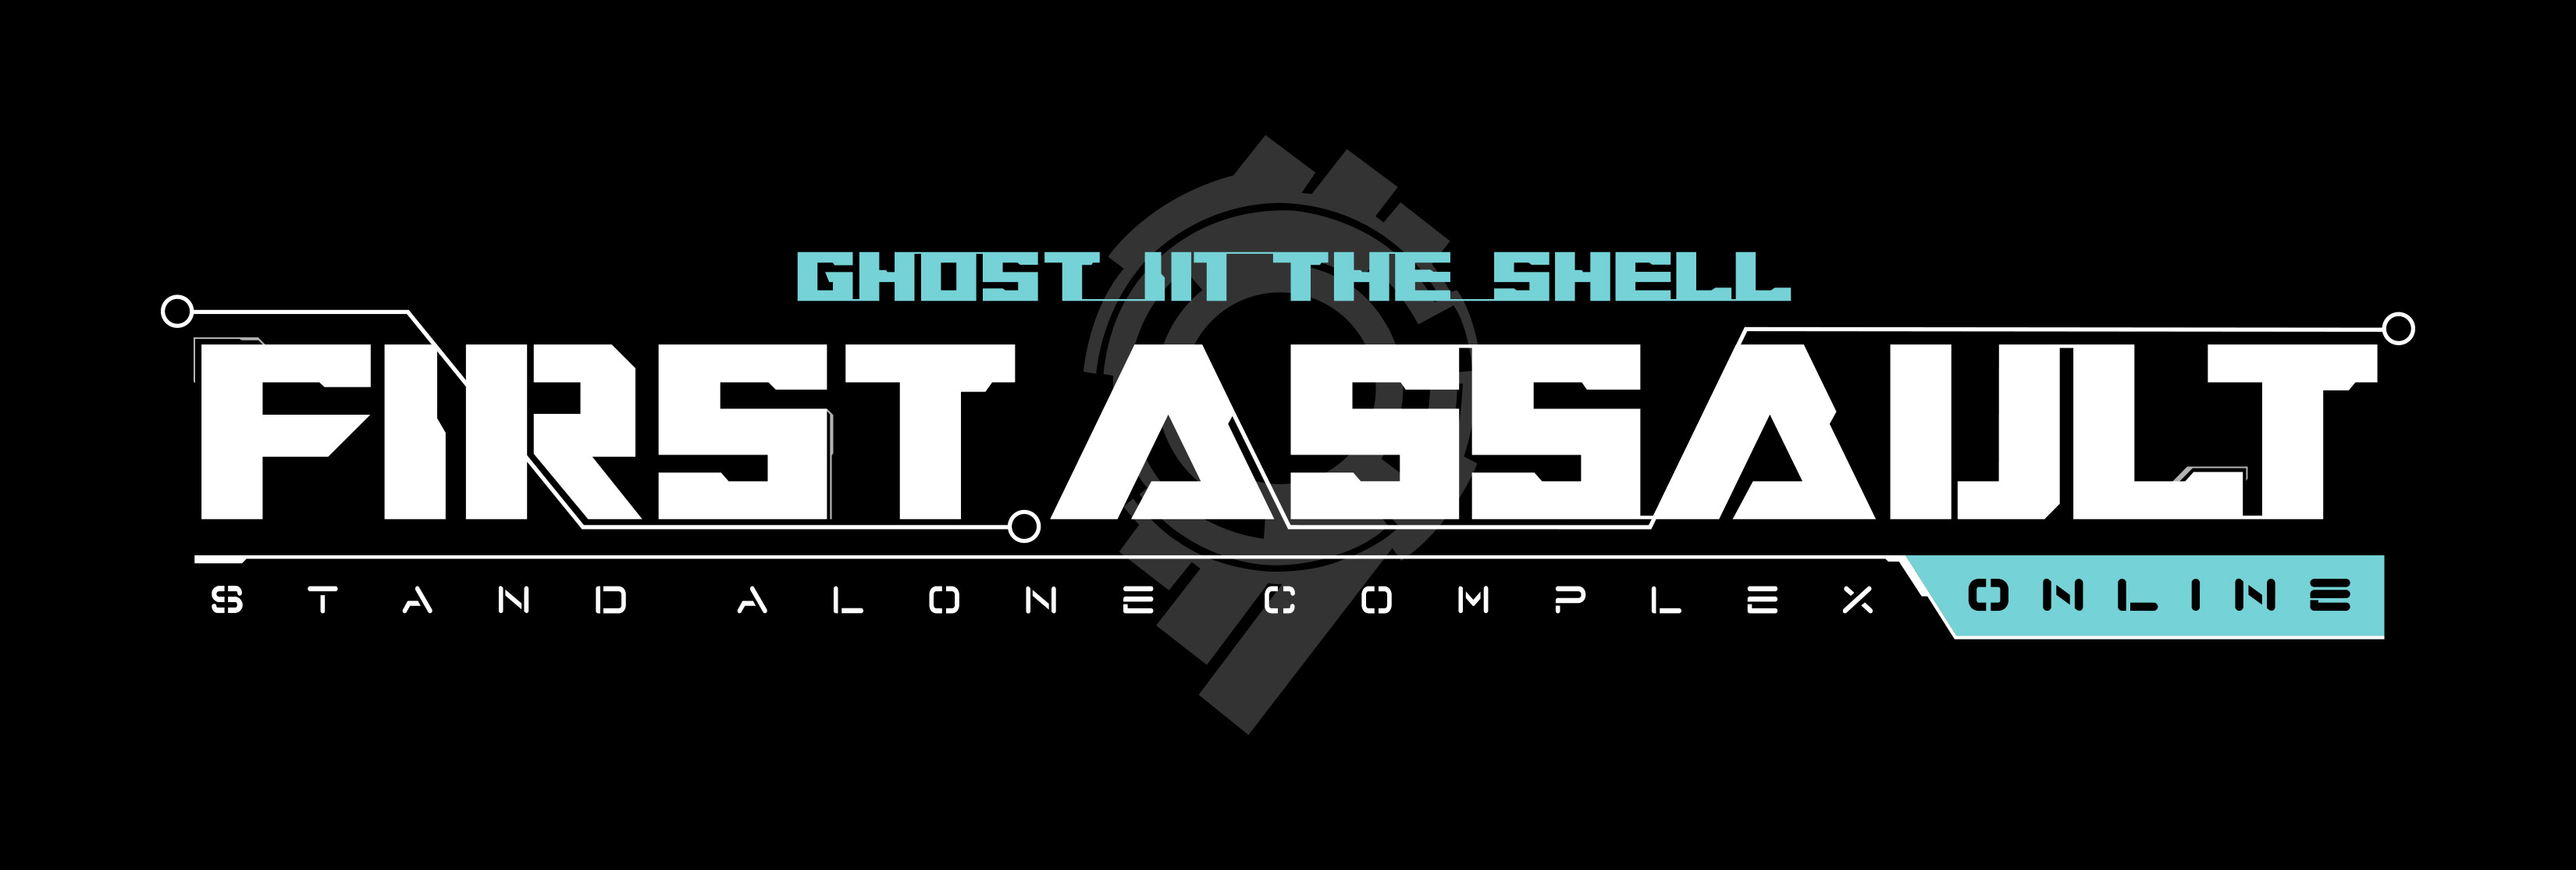 Boîte de Ghost in the Shell : Stand Alone Complex - First Assault Online